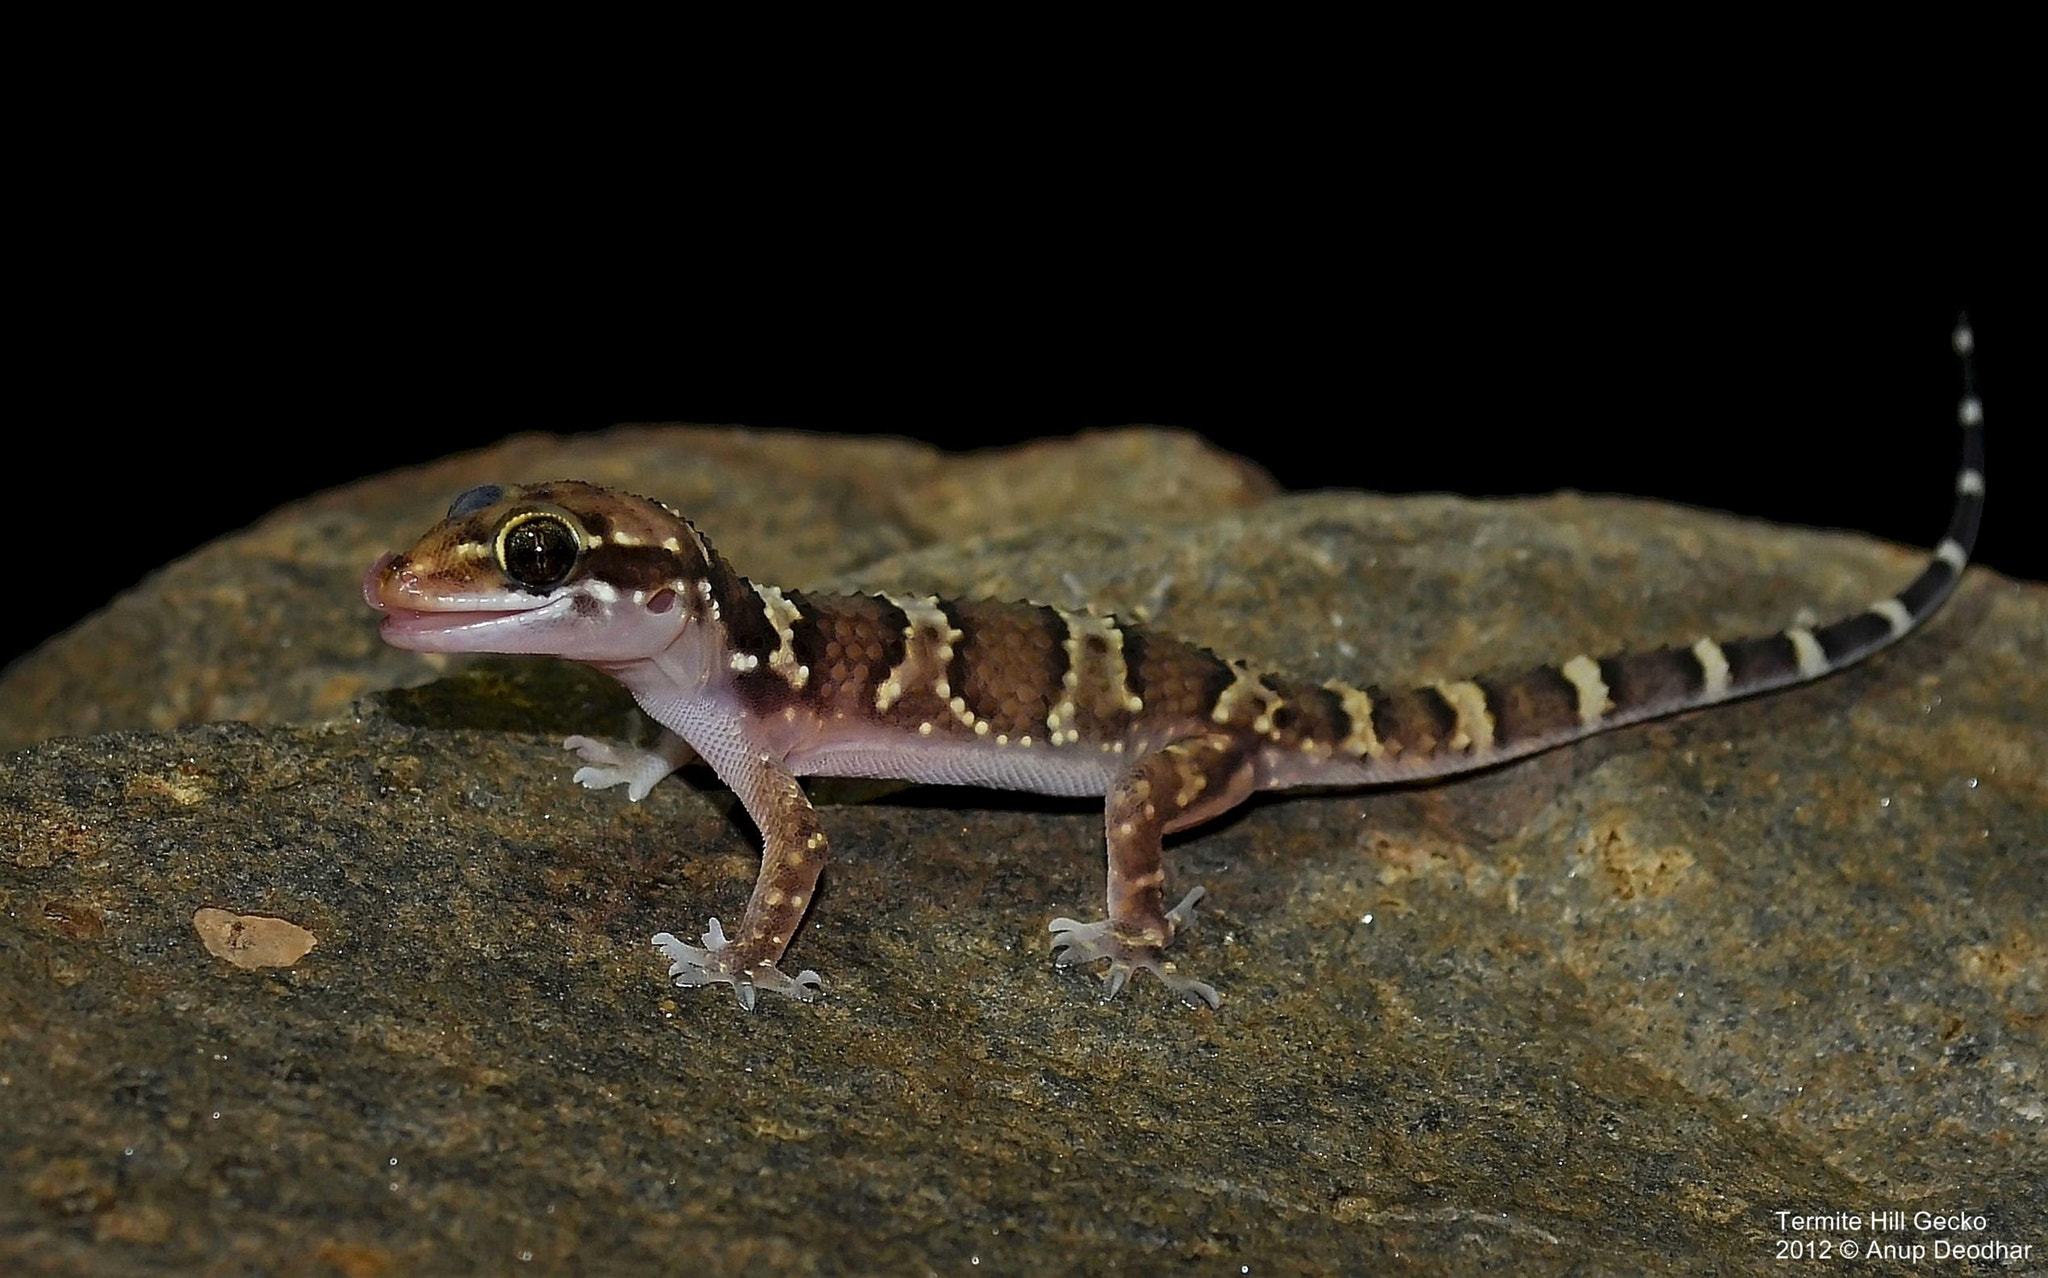 Photograph Termite Hill Gecko by Anup Deodhar on 500px